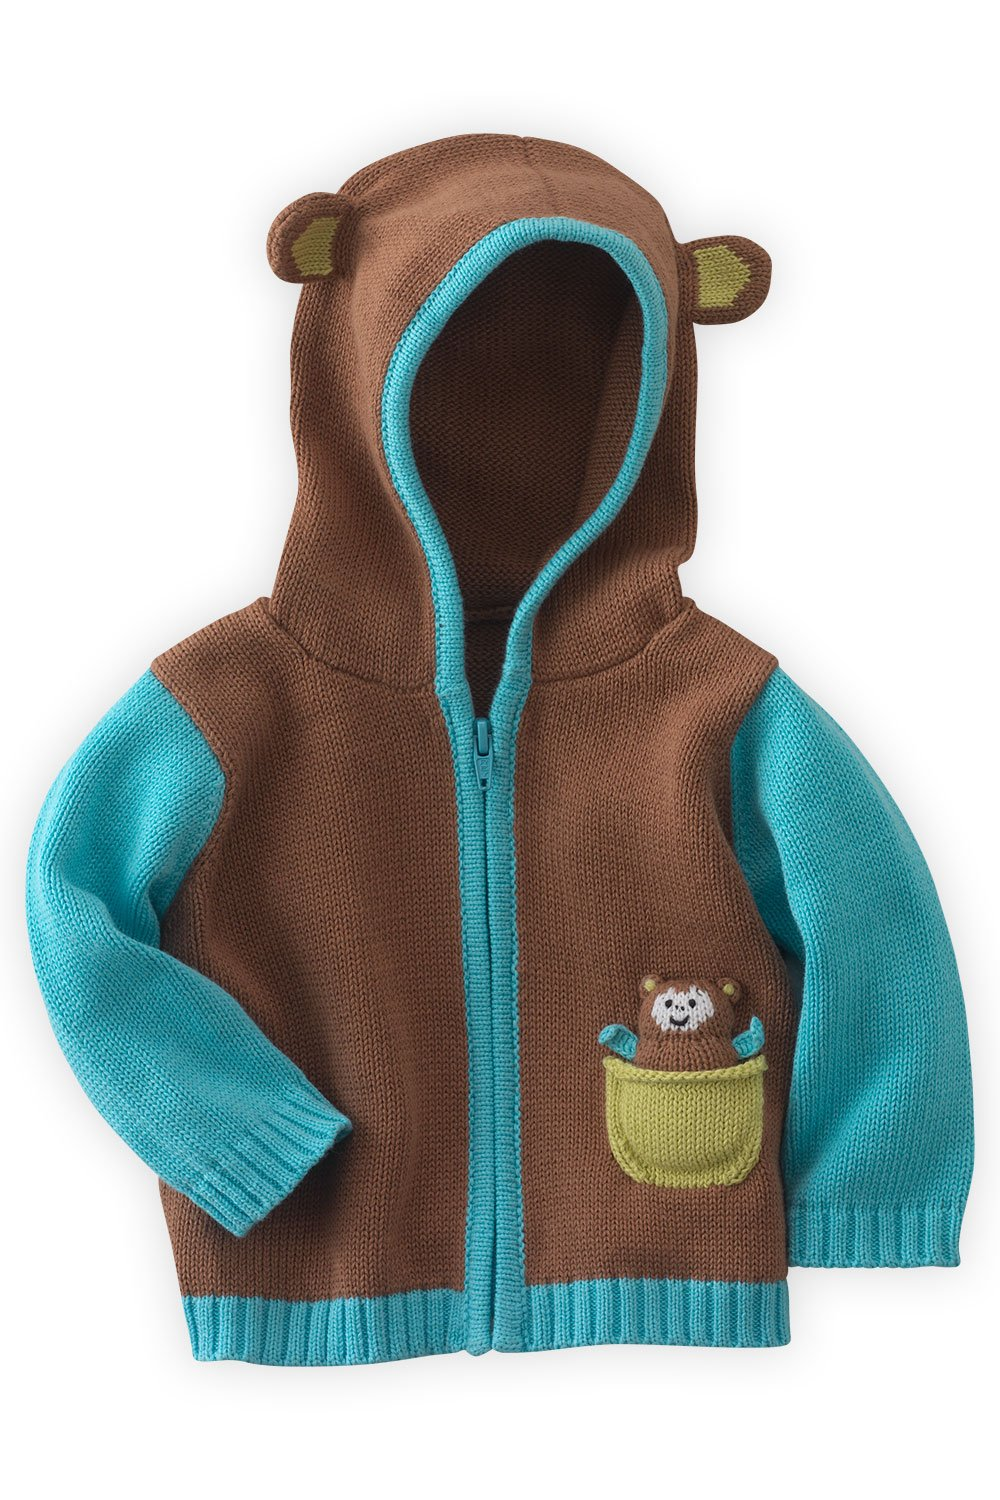 Joobles Organic Baby Cardigan Sweater - Mel The Monkey (12-18 Mos) Brown by Joobles